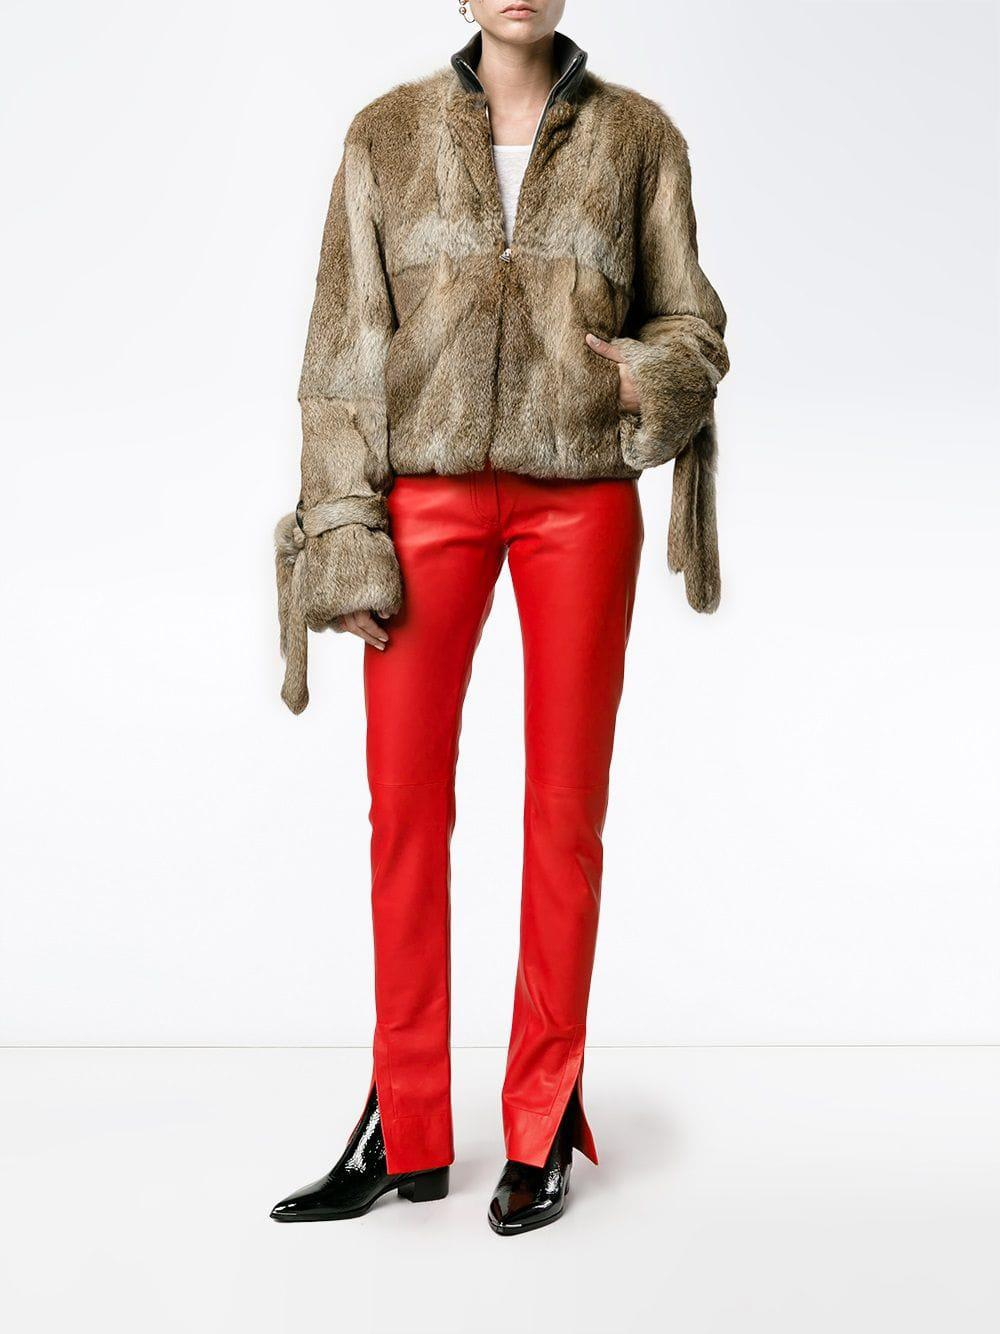 Loewe Straight Leather Pants in Red (Blue)